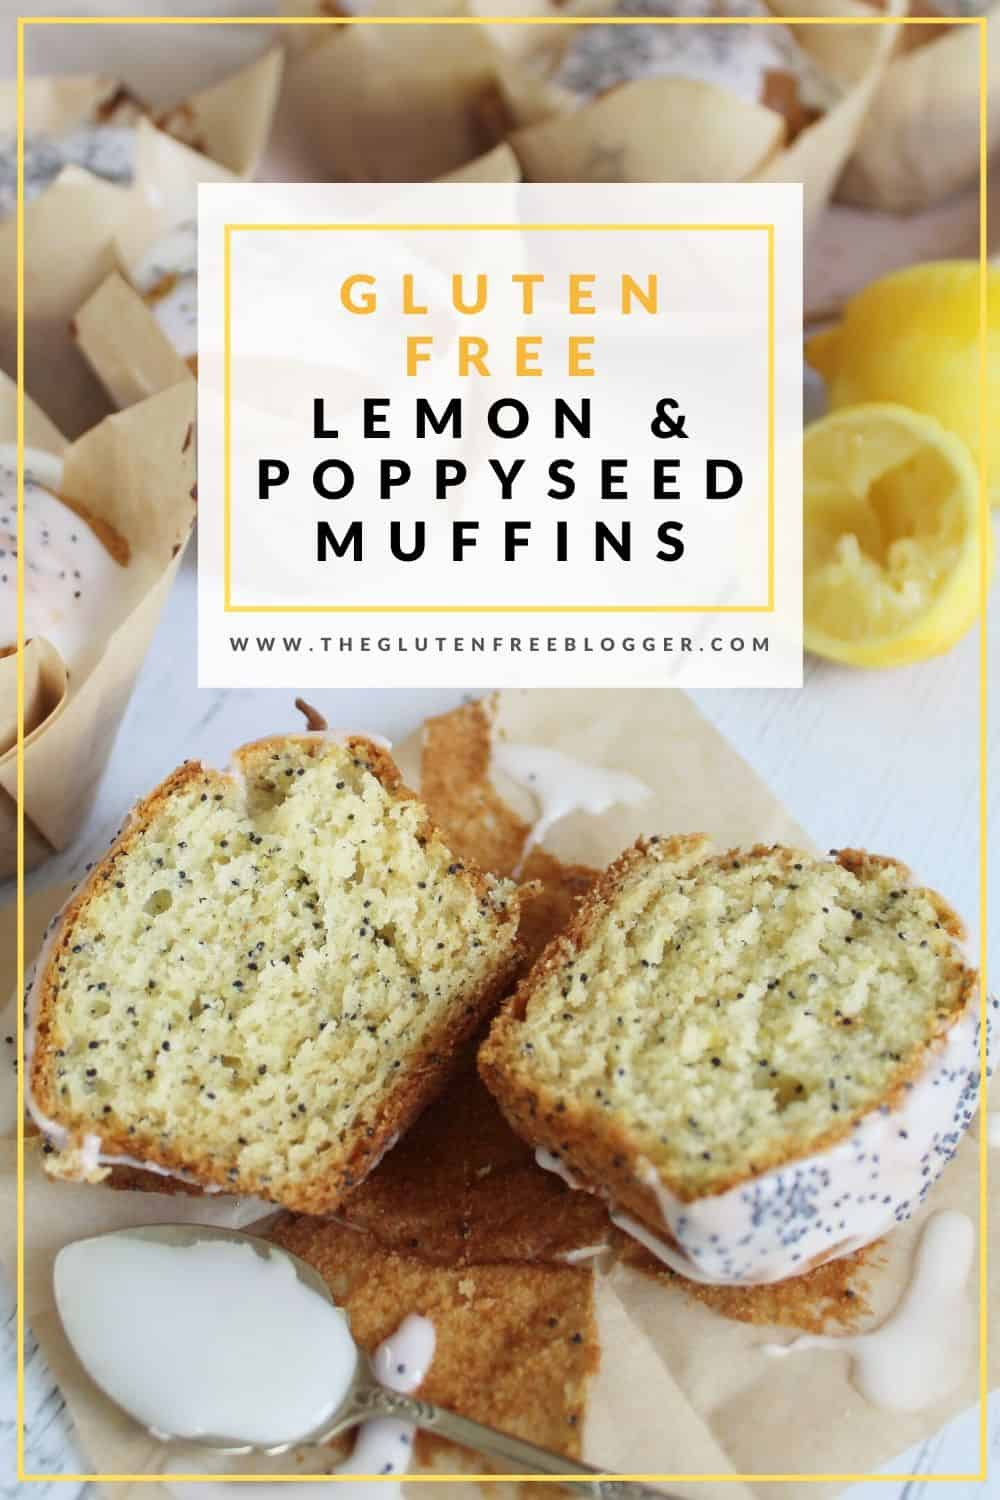 gluten free lemon and poppyseed muffins recipe coeliac celiac easy baking recipes